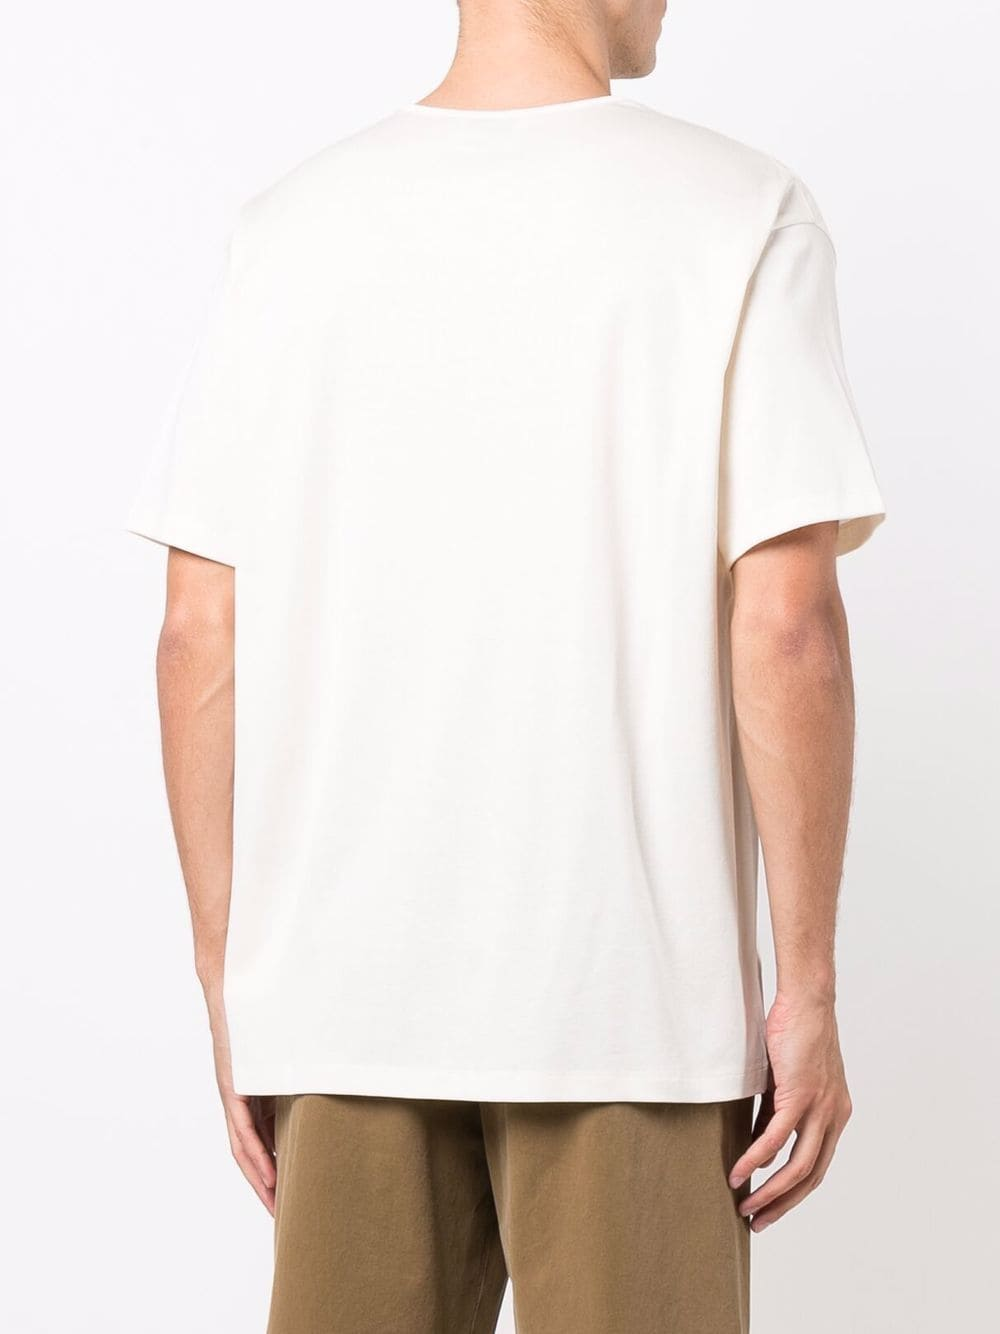 t-shirt in cotone uomo bianca LEMAIRE | T-shirt | M 213 JE305 LJ060000